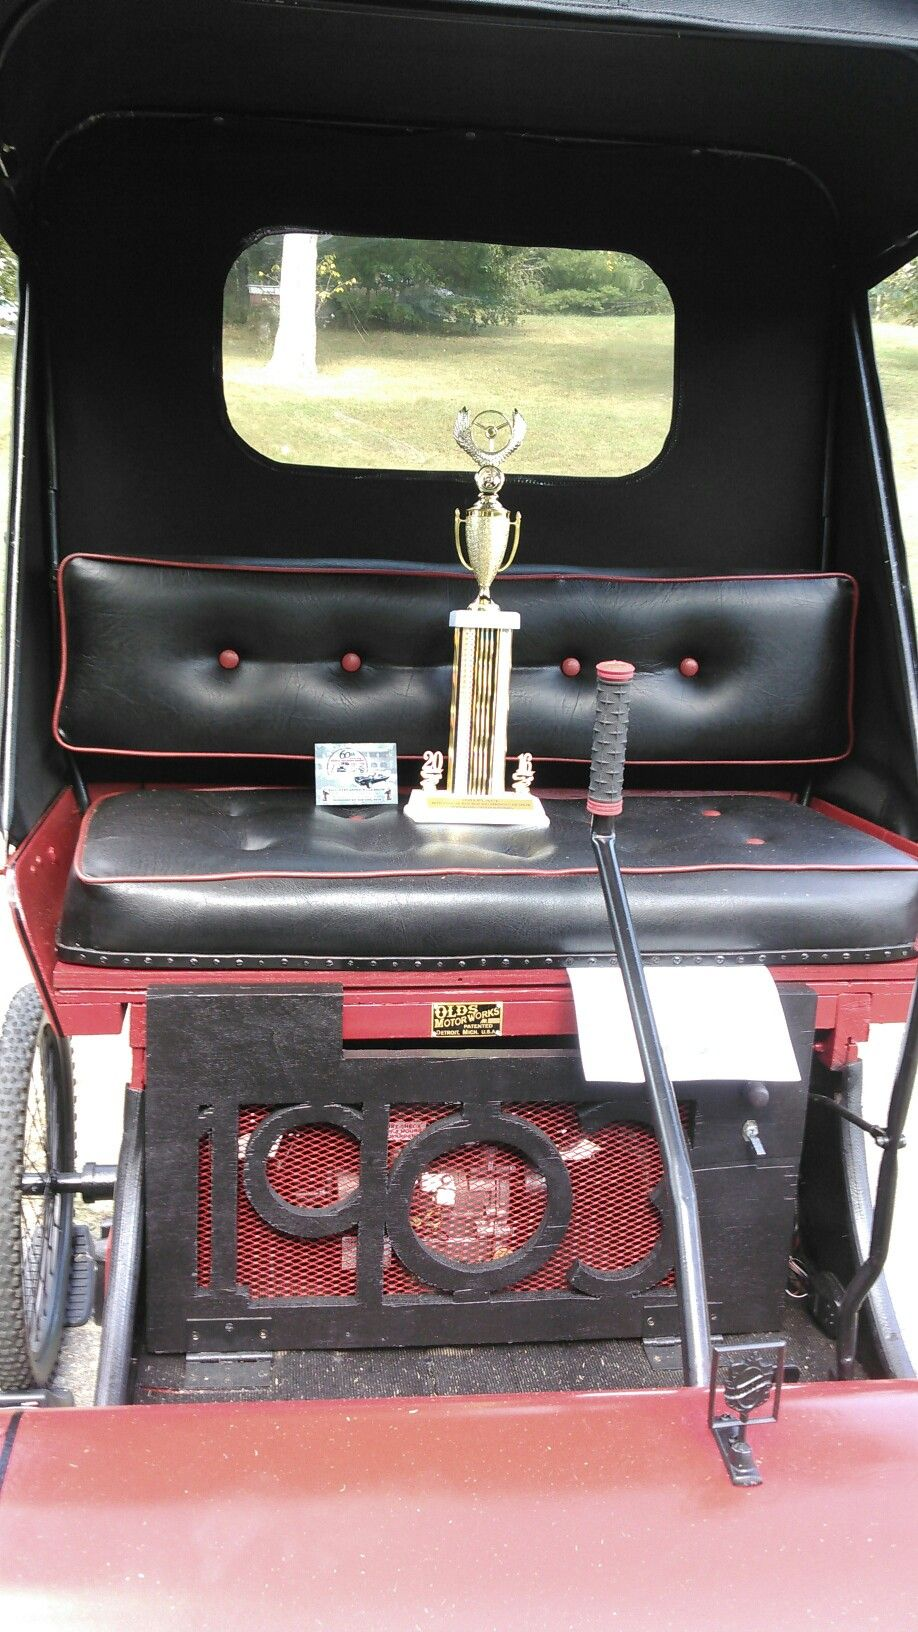 Red Boiling Springs Tennessee Car Show, 2nd Place